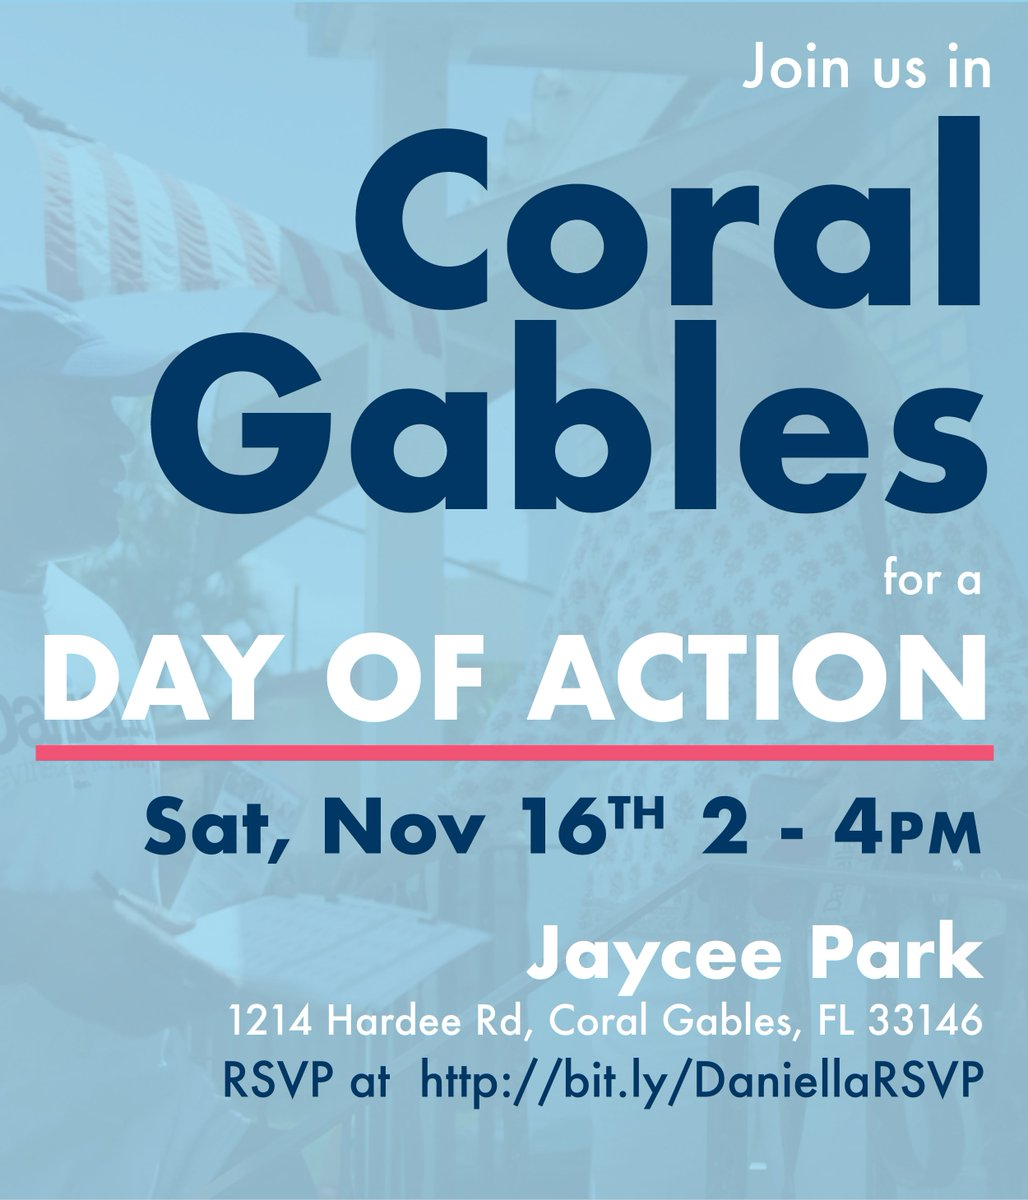 This Saturday, November 16 from 2 - 4 PM, we'll get closer to making history! Join me as we collect signatures from our friends and neighbors in Coral Gables to put my name on the ballot the good, democratic way.